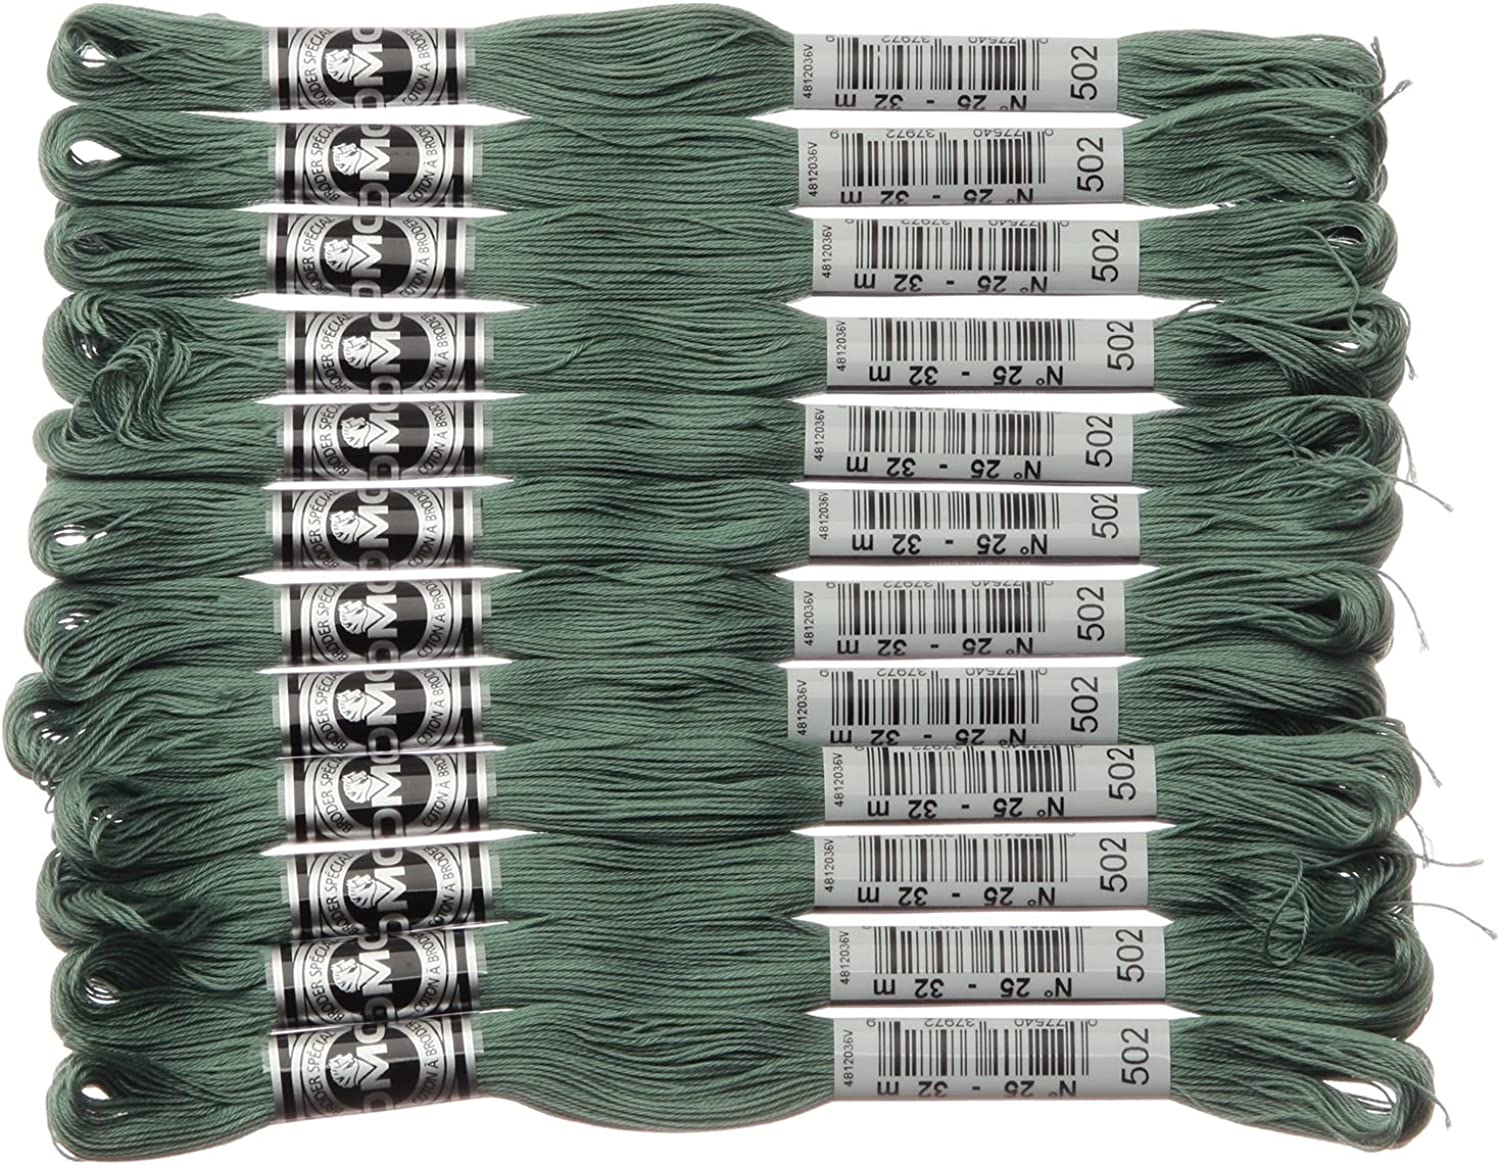 [12 Hank Cored] DMC Abu Loader Embroidery Thread   107 25 Fastest 502 DMC10725B   502